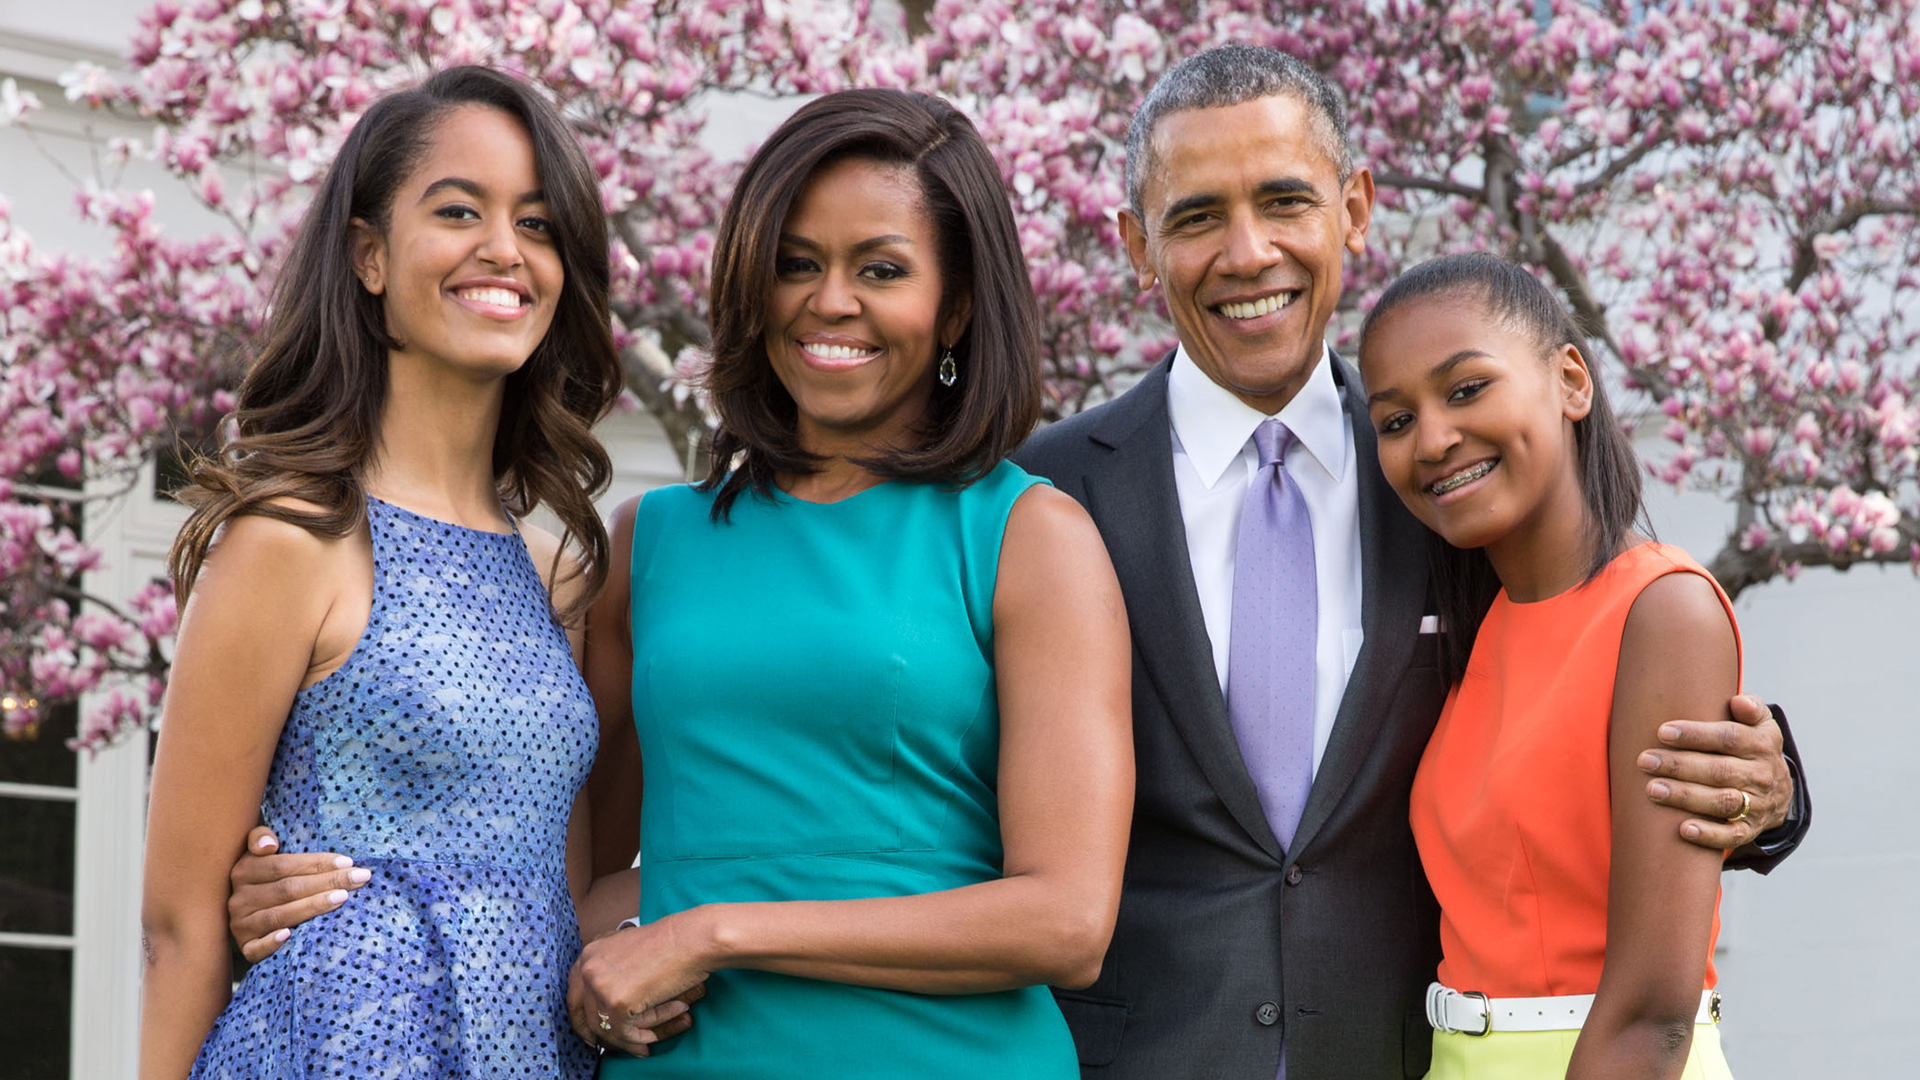 Barack Obama and Family Visit Balinese Paddy Fields During Vacation